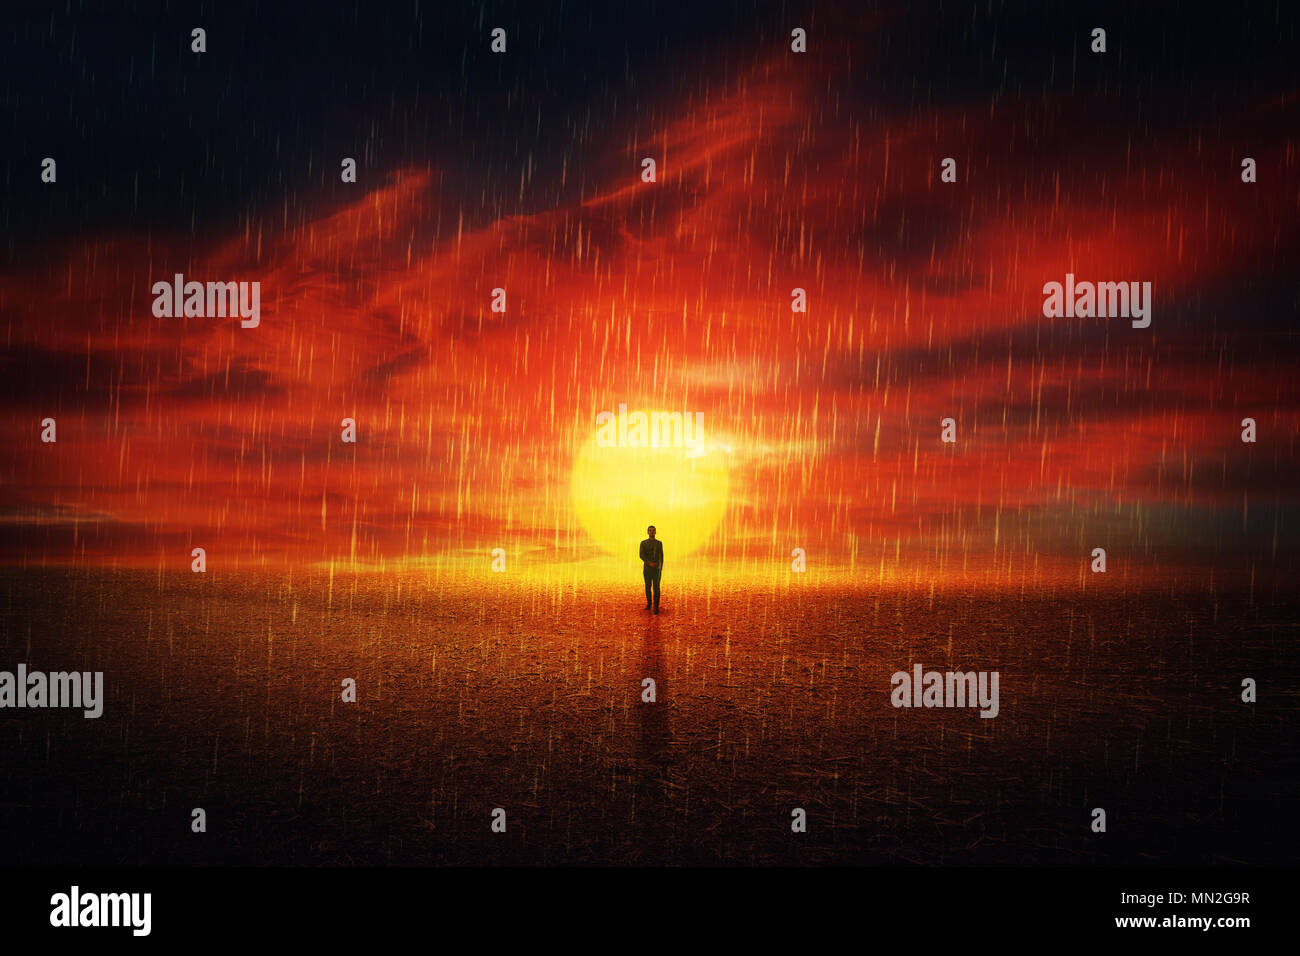 Futuristic scenery view as a man silhouette walking on a dry desert ground over sunset background and the acid rain falling from the sky. Global pollu Stock Photo